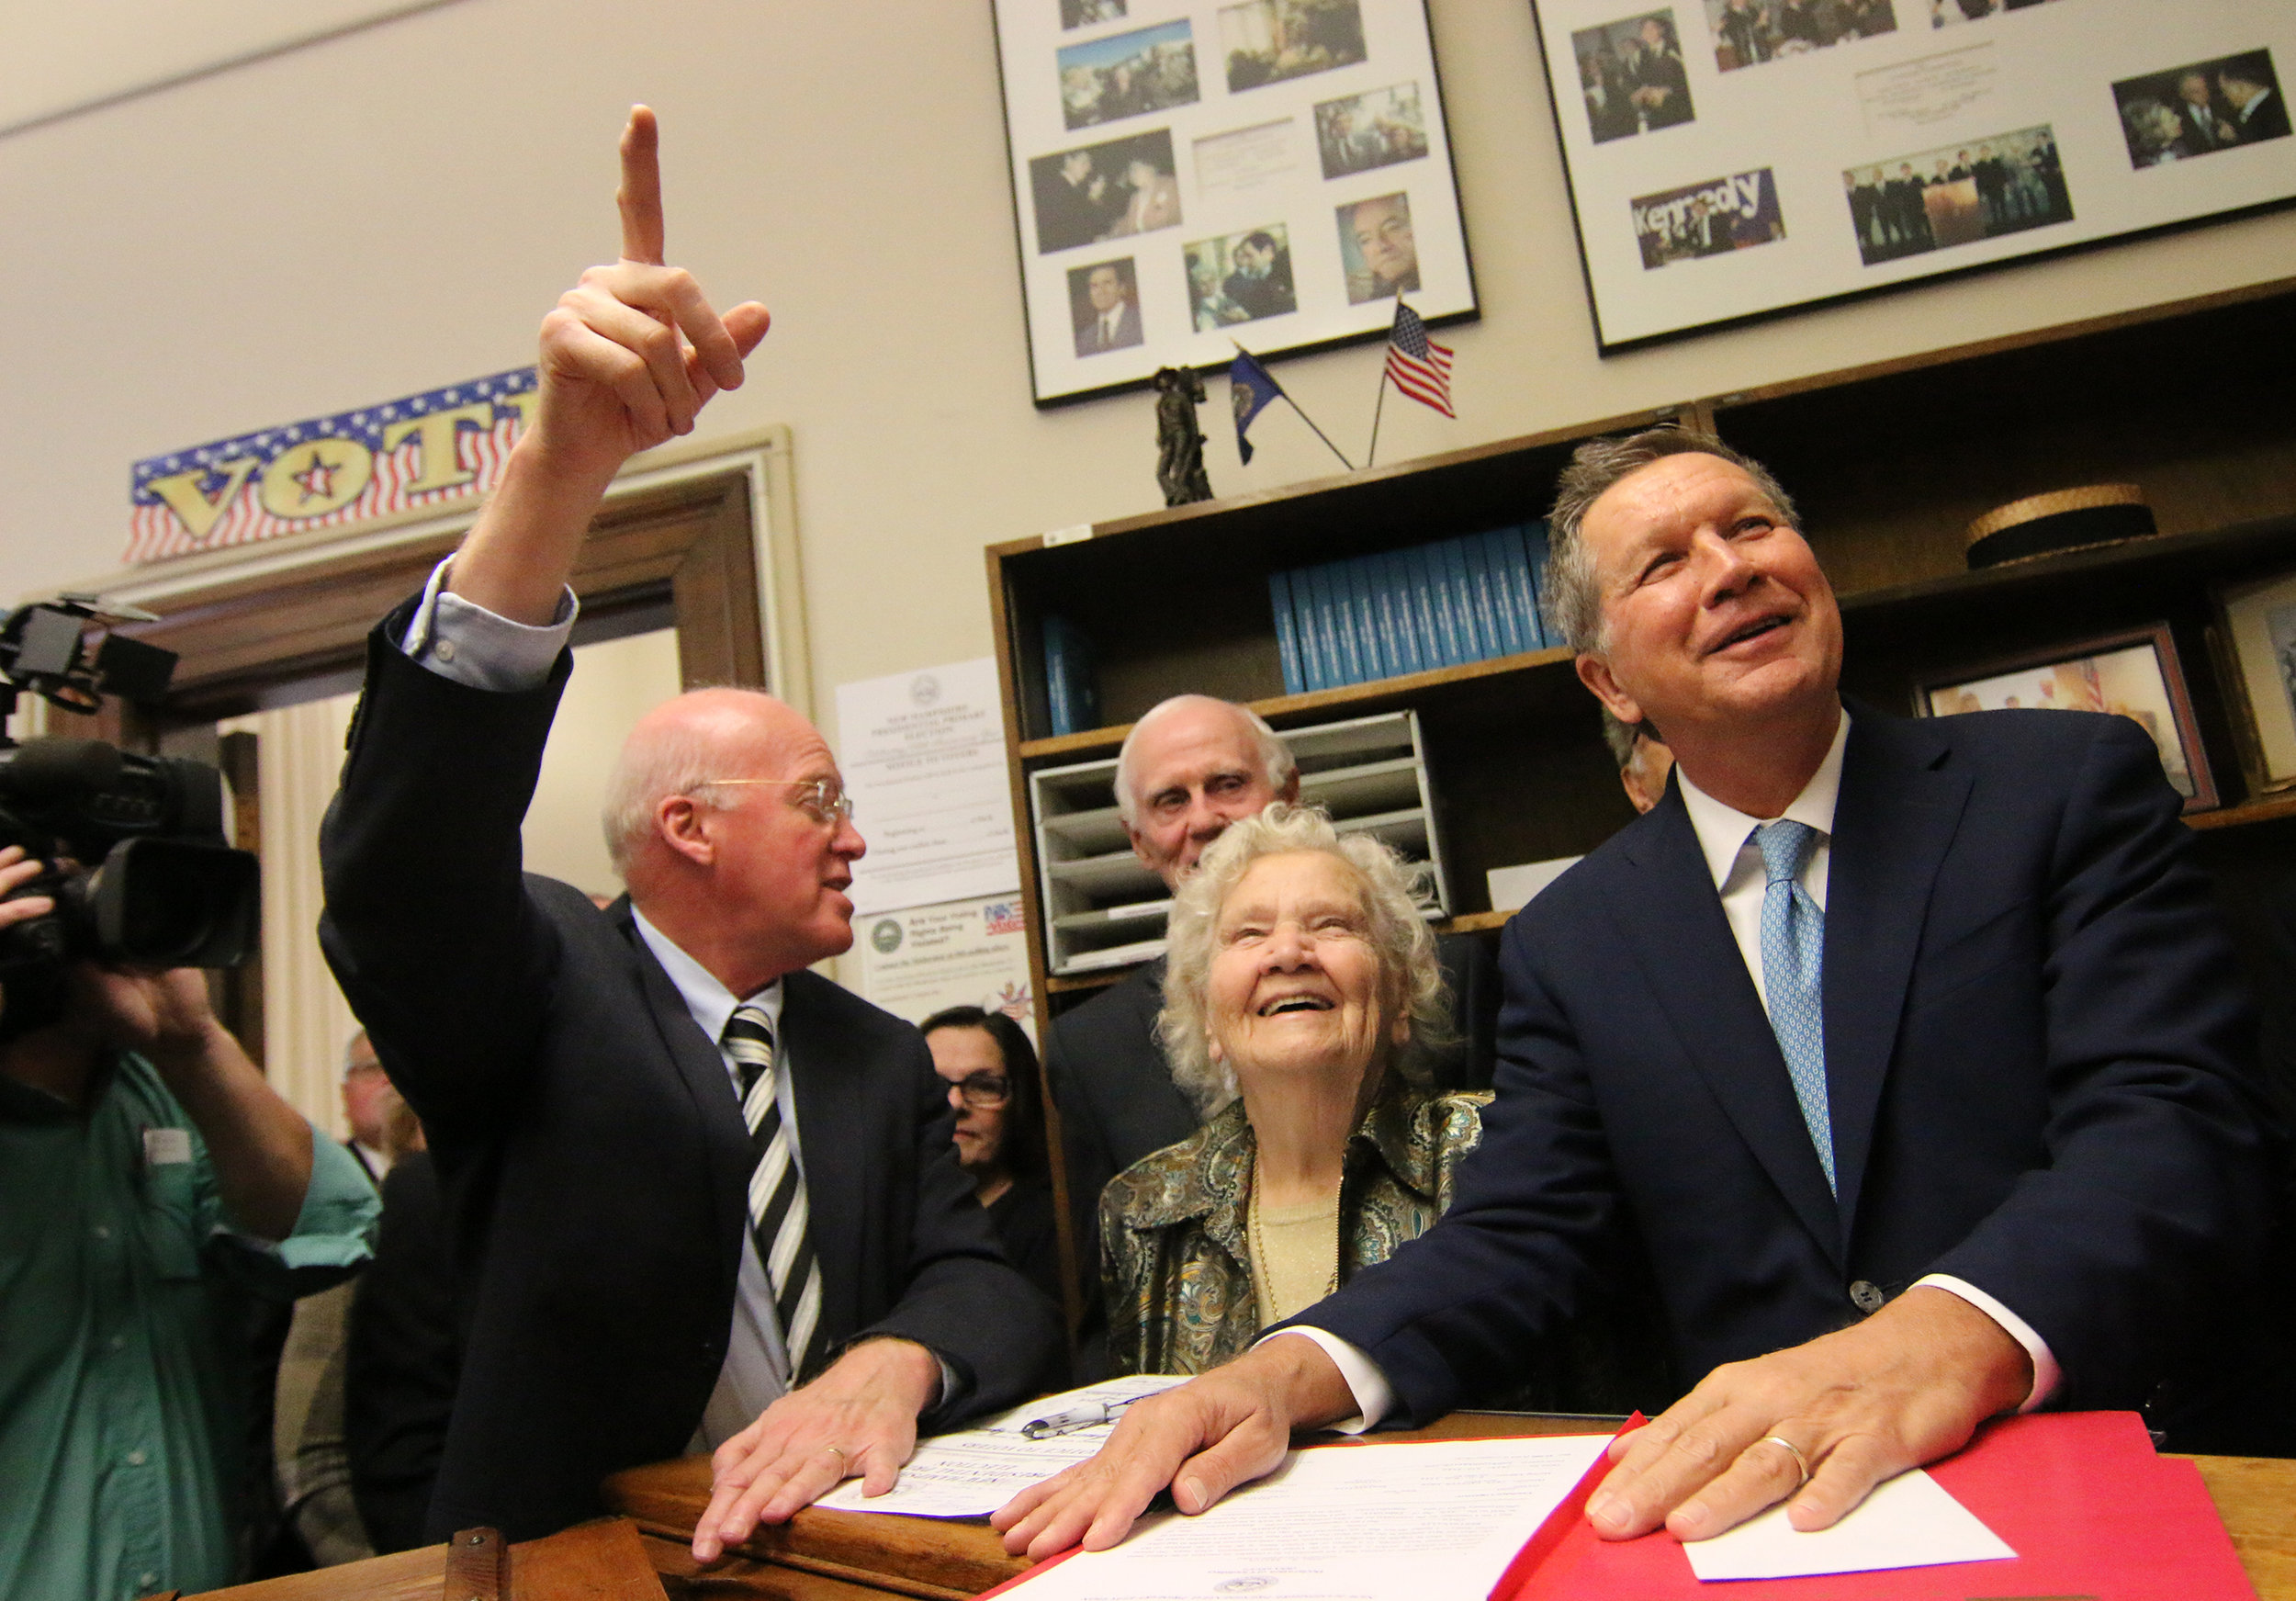 While filing for the 2016 primary, Ohio Gov. John Kasich reminisces with Gardner about his 1999 New Hampshire Primary bid. Photo by Allegra Boverman.